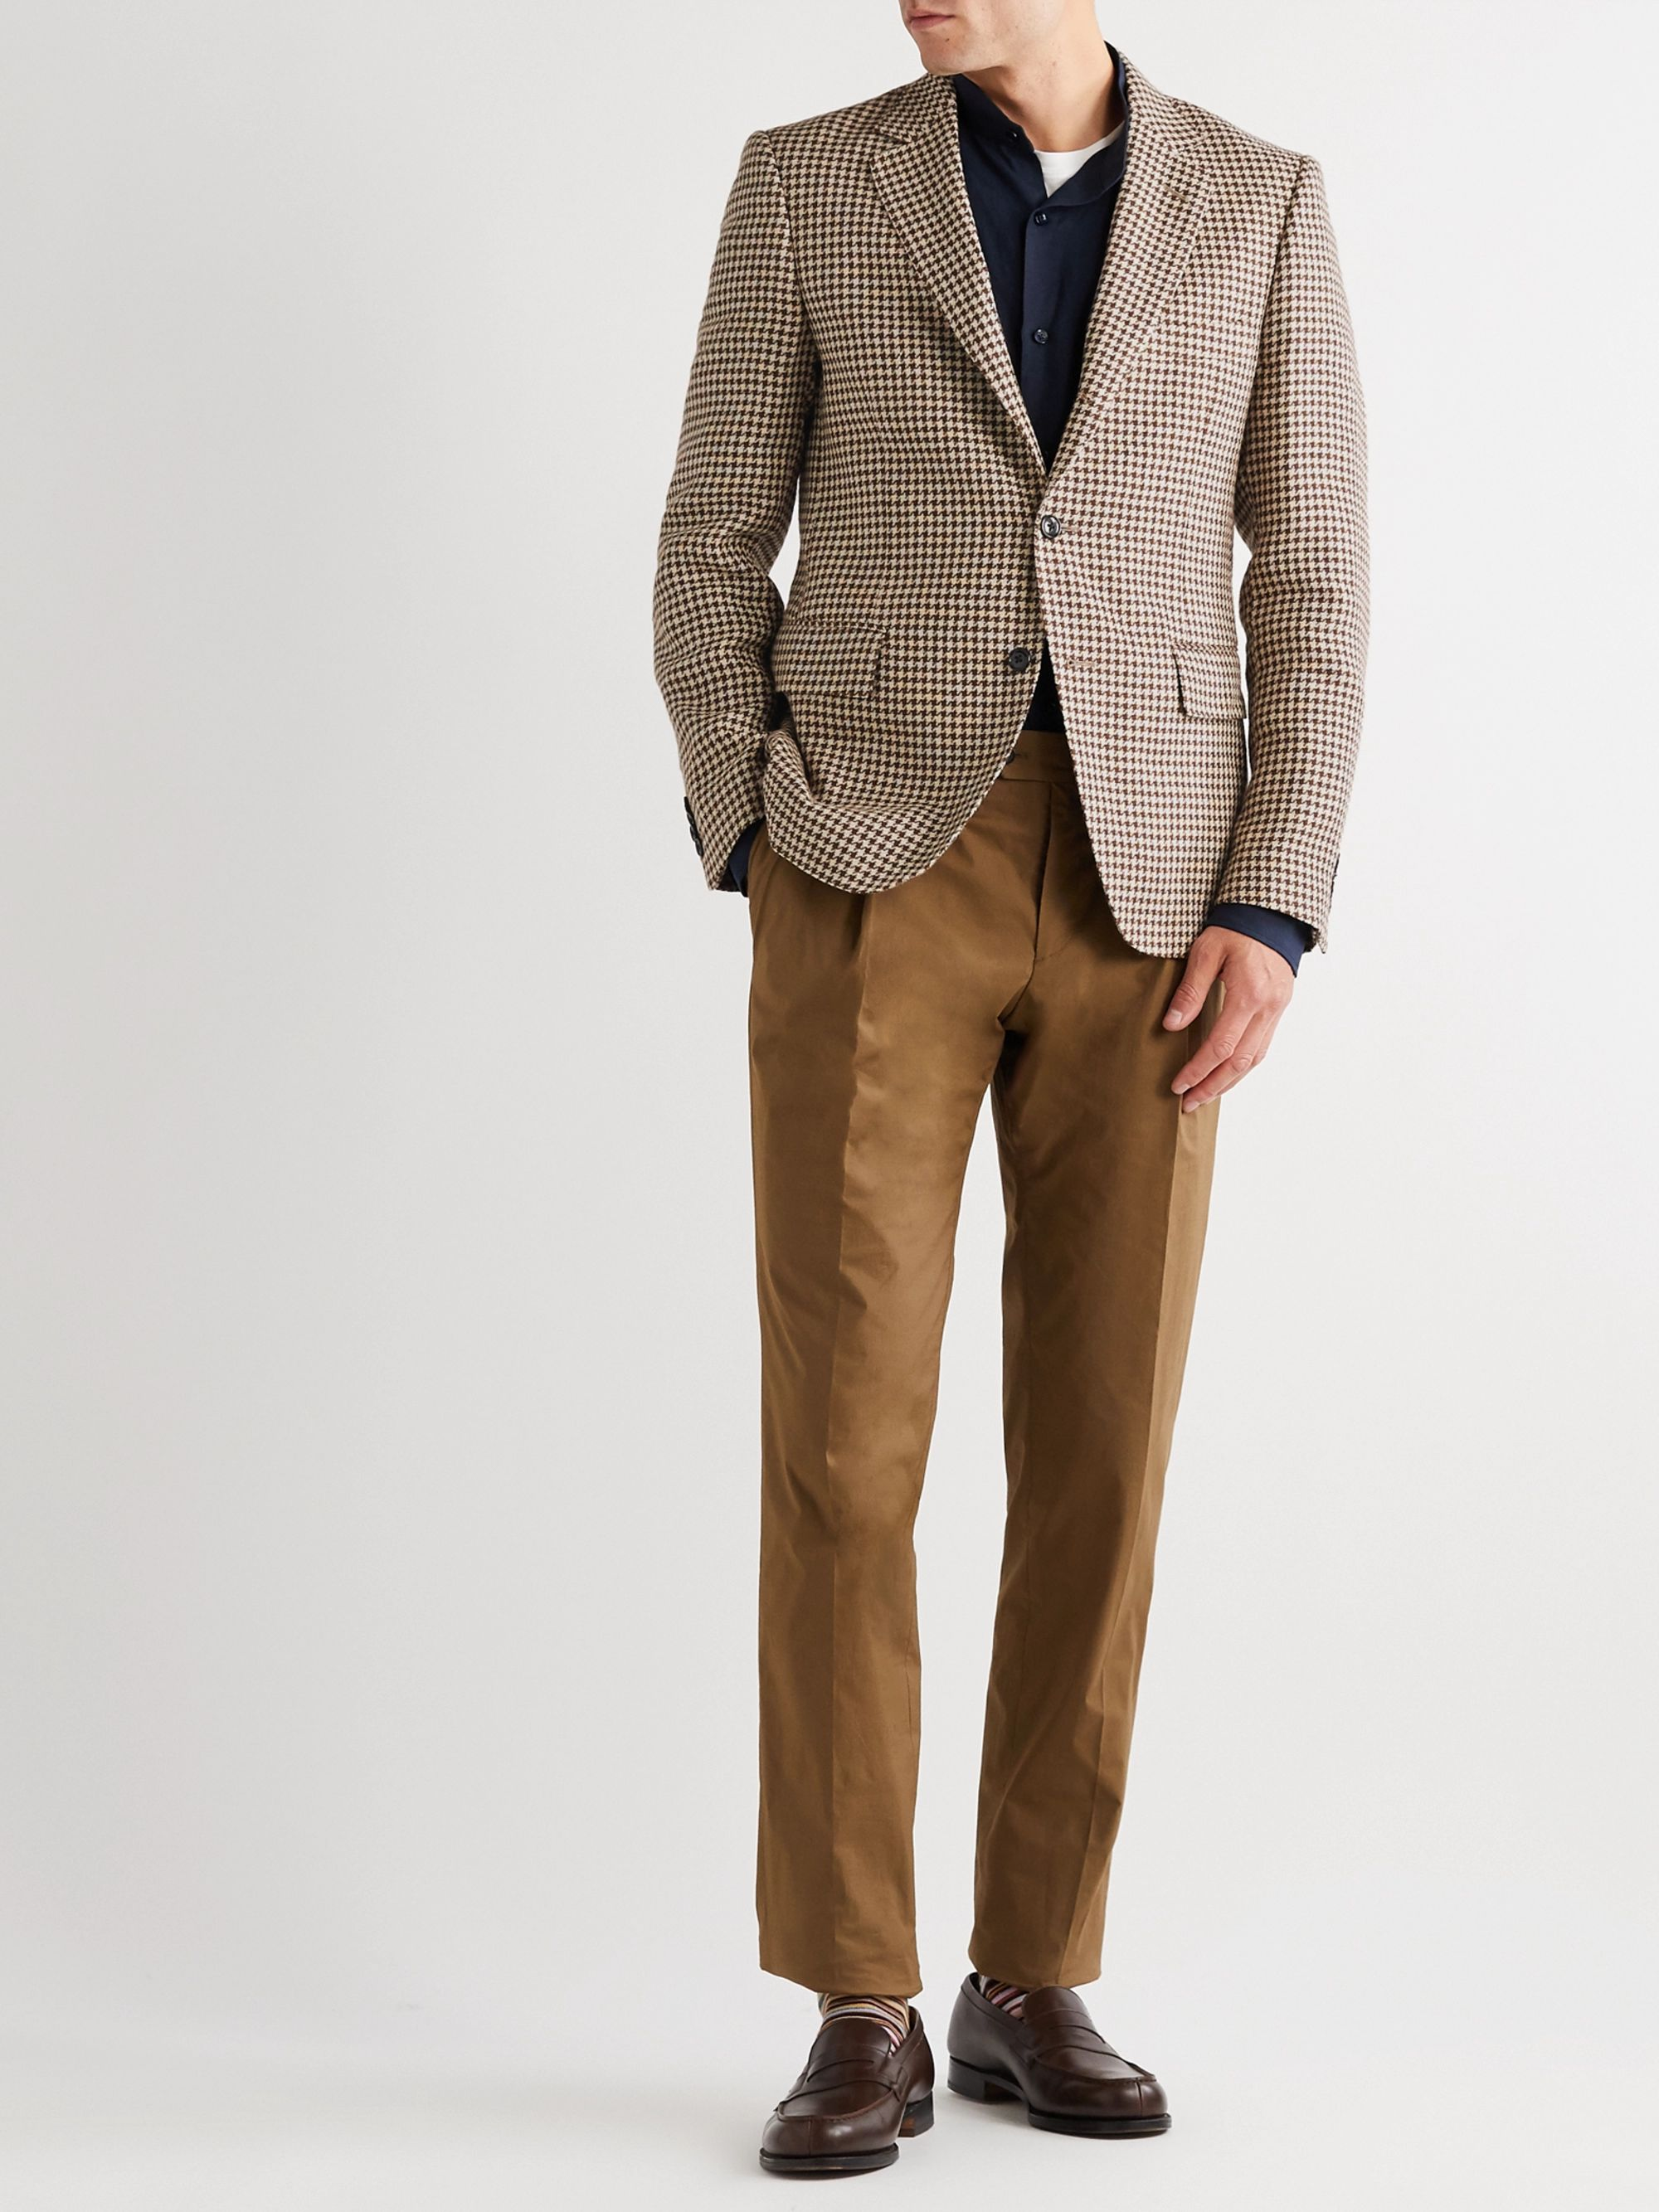 MP MASSIMO PIOMBO Slim-Fit Houndstooth Linen and Cotton-Blend Blazer